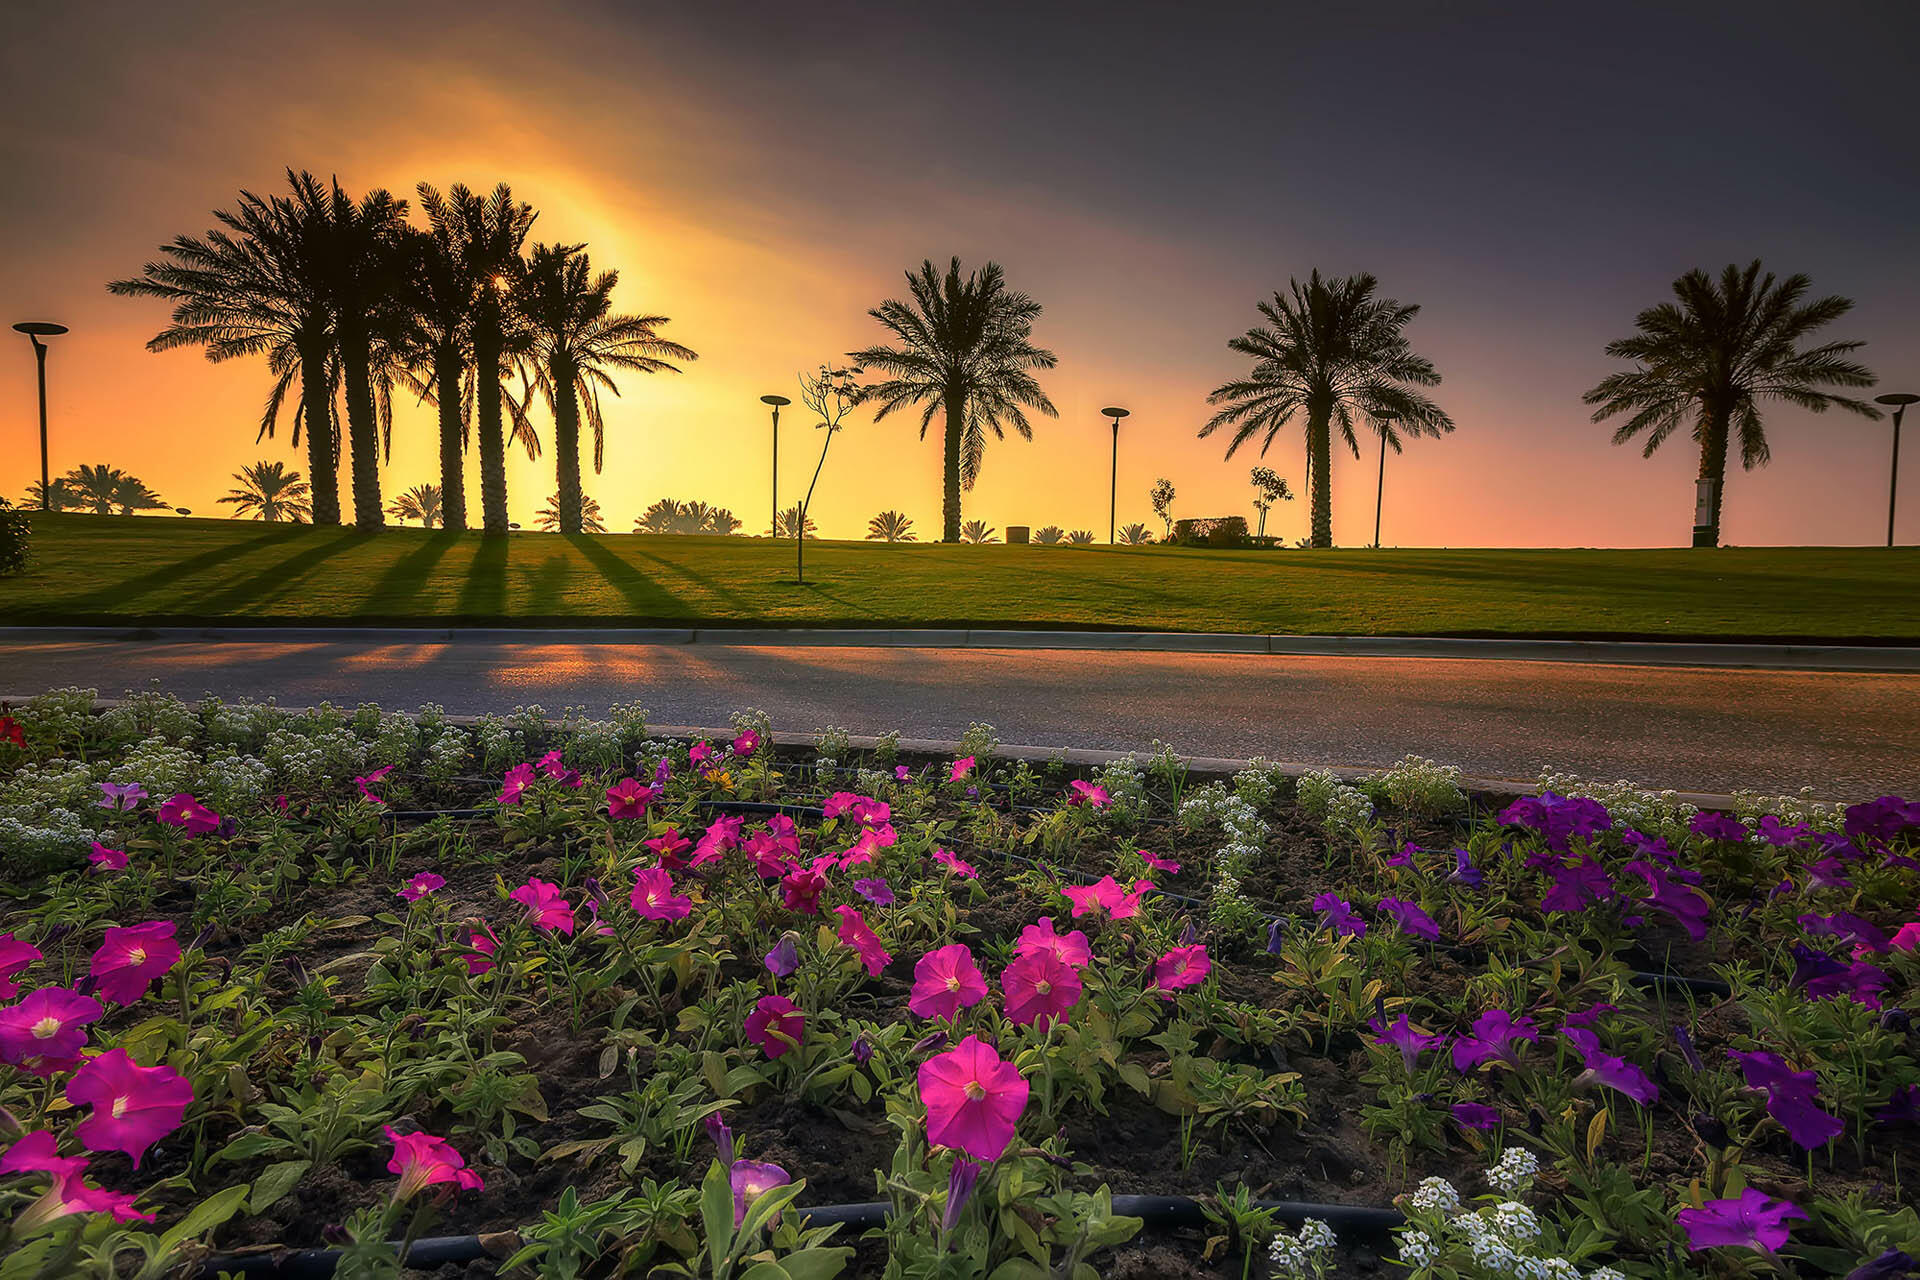 Sunrise view Modon Lake Dammam - flowers in the foreground